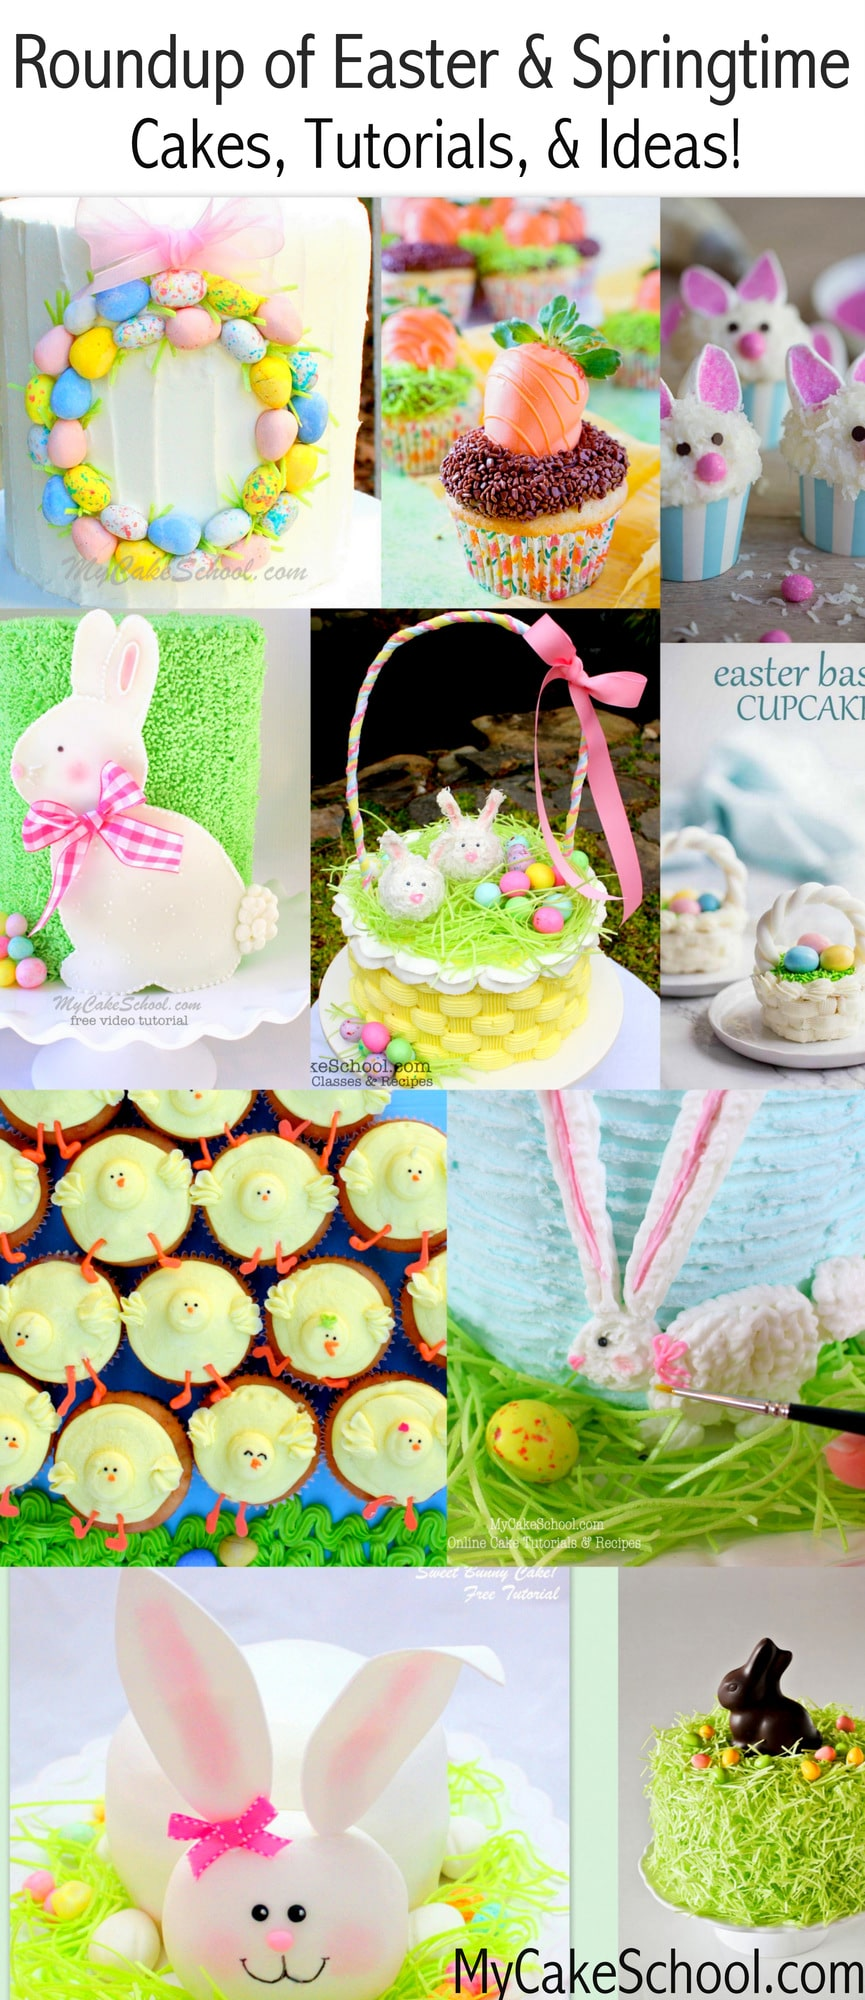 Roundup of the CUTEST Easter and Springtime Cakes, Tutorials, and Ideas! MyCakeSchool.com